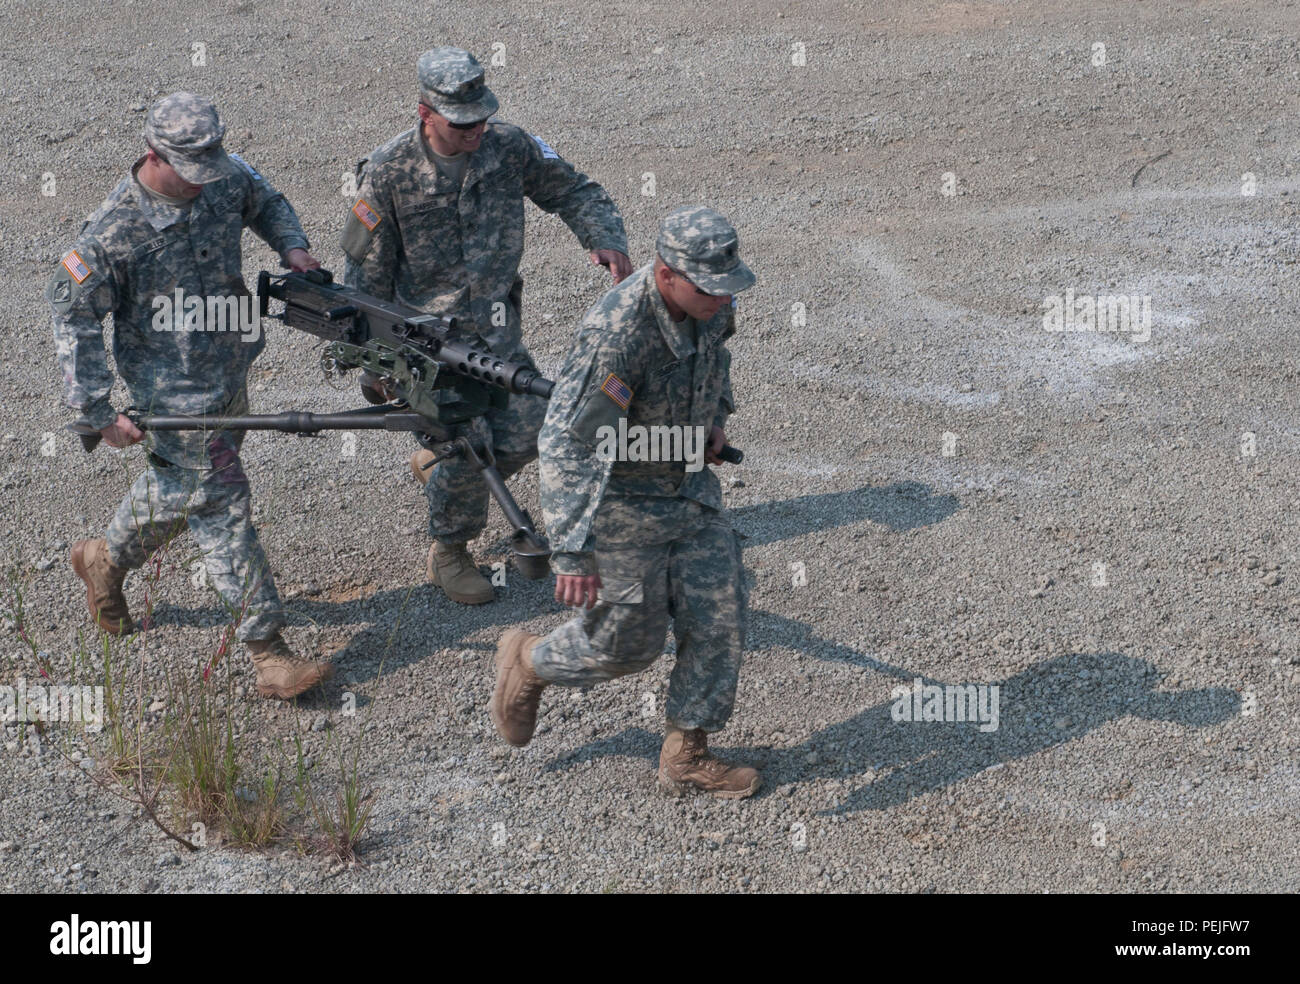 2015 Sapper Stakes High Resolution Stock Photography And Images Alamy